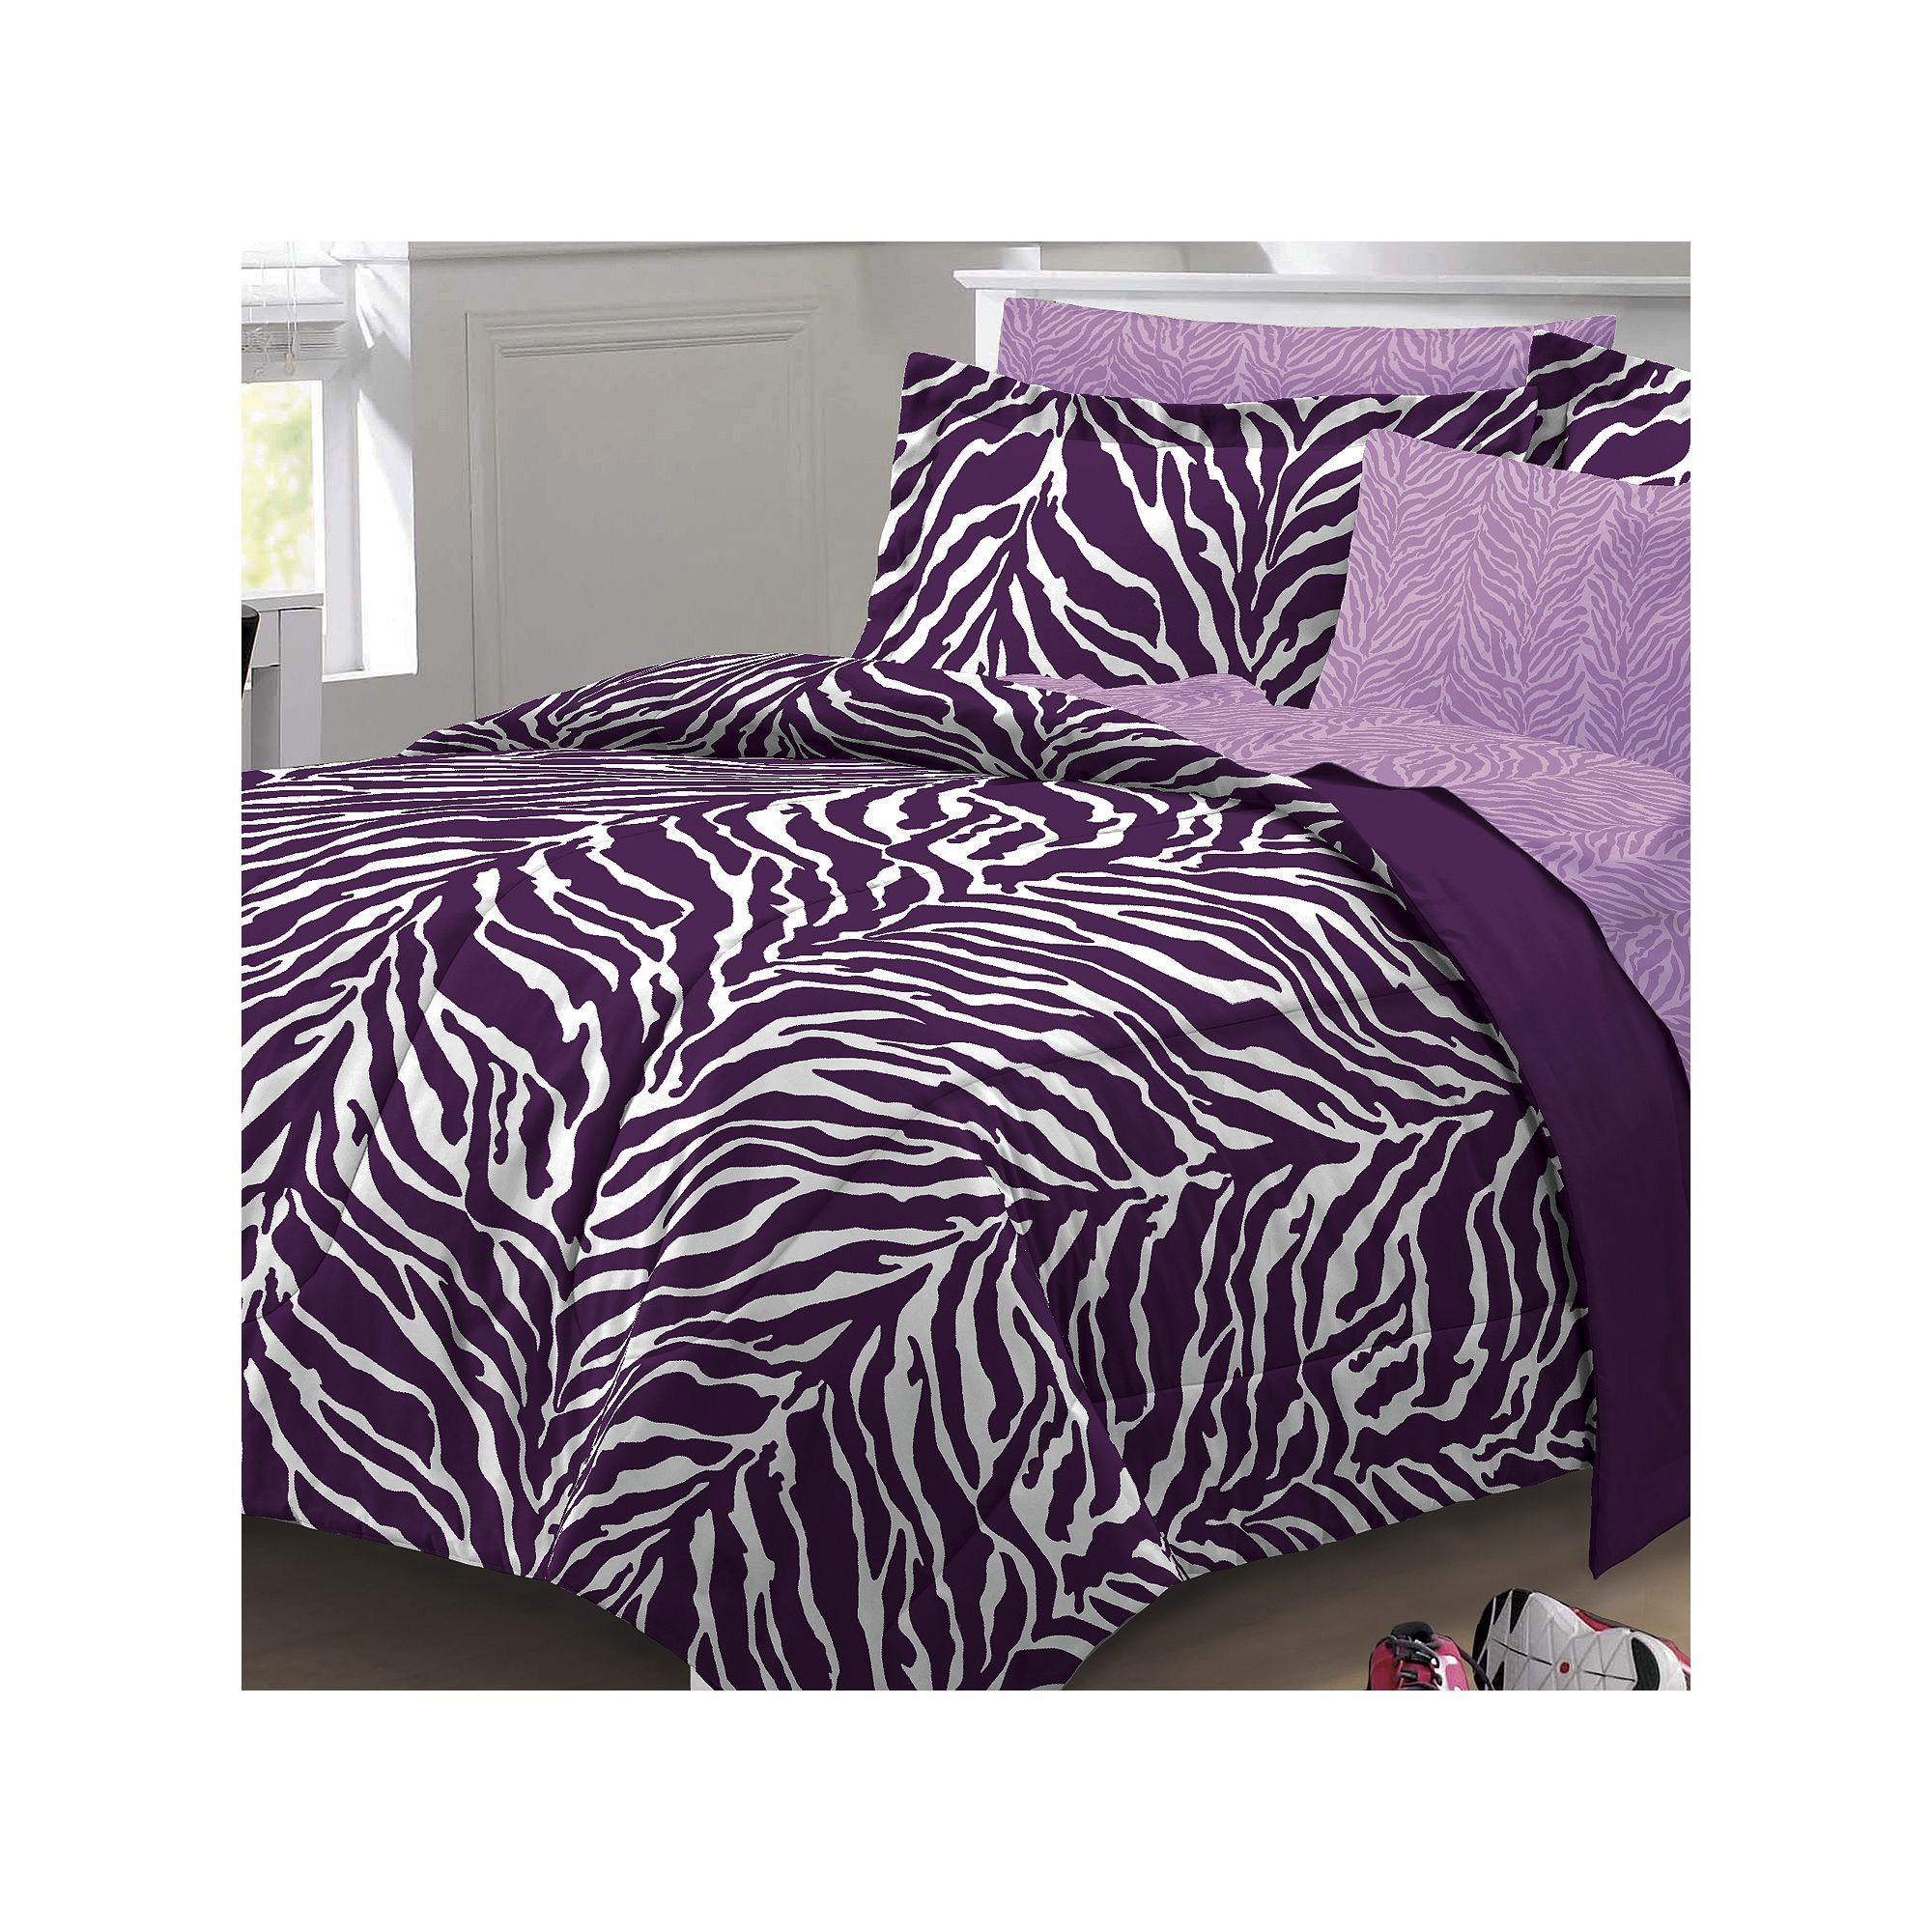 Room Zebra Bed Set Bedding Sets